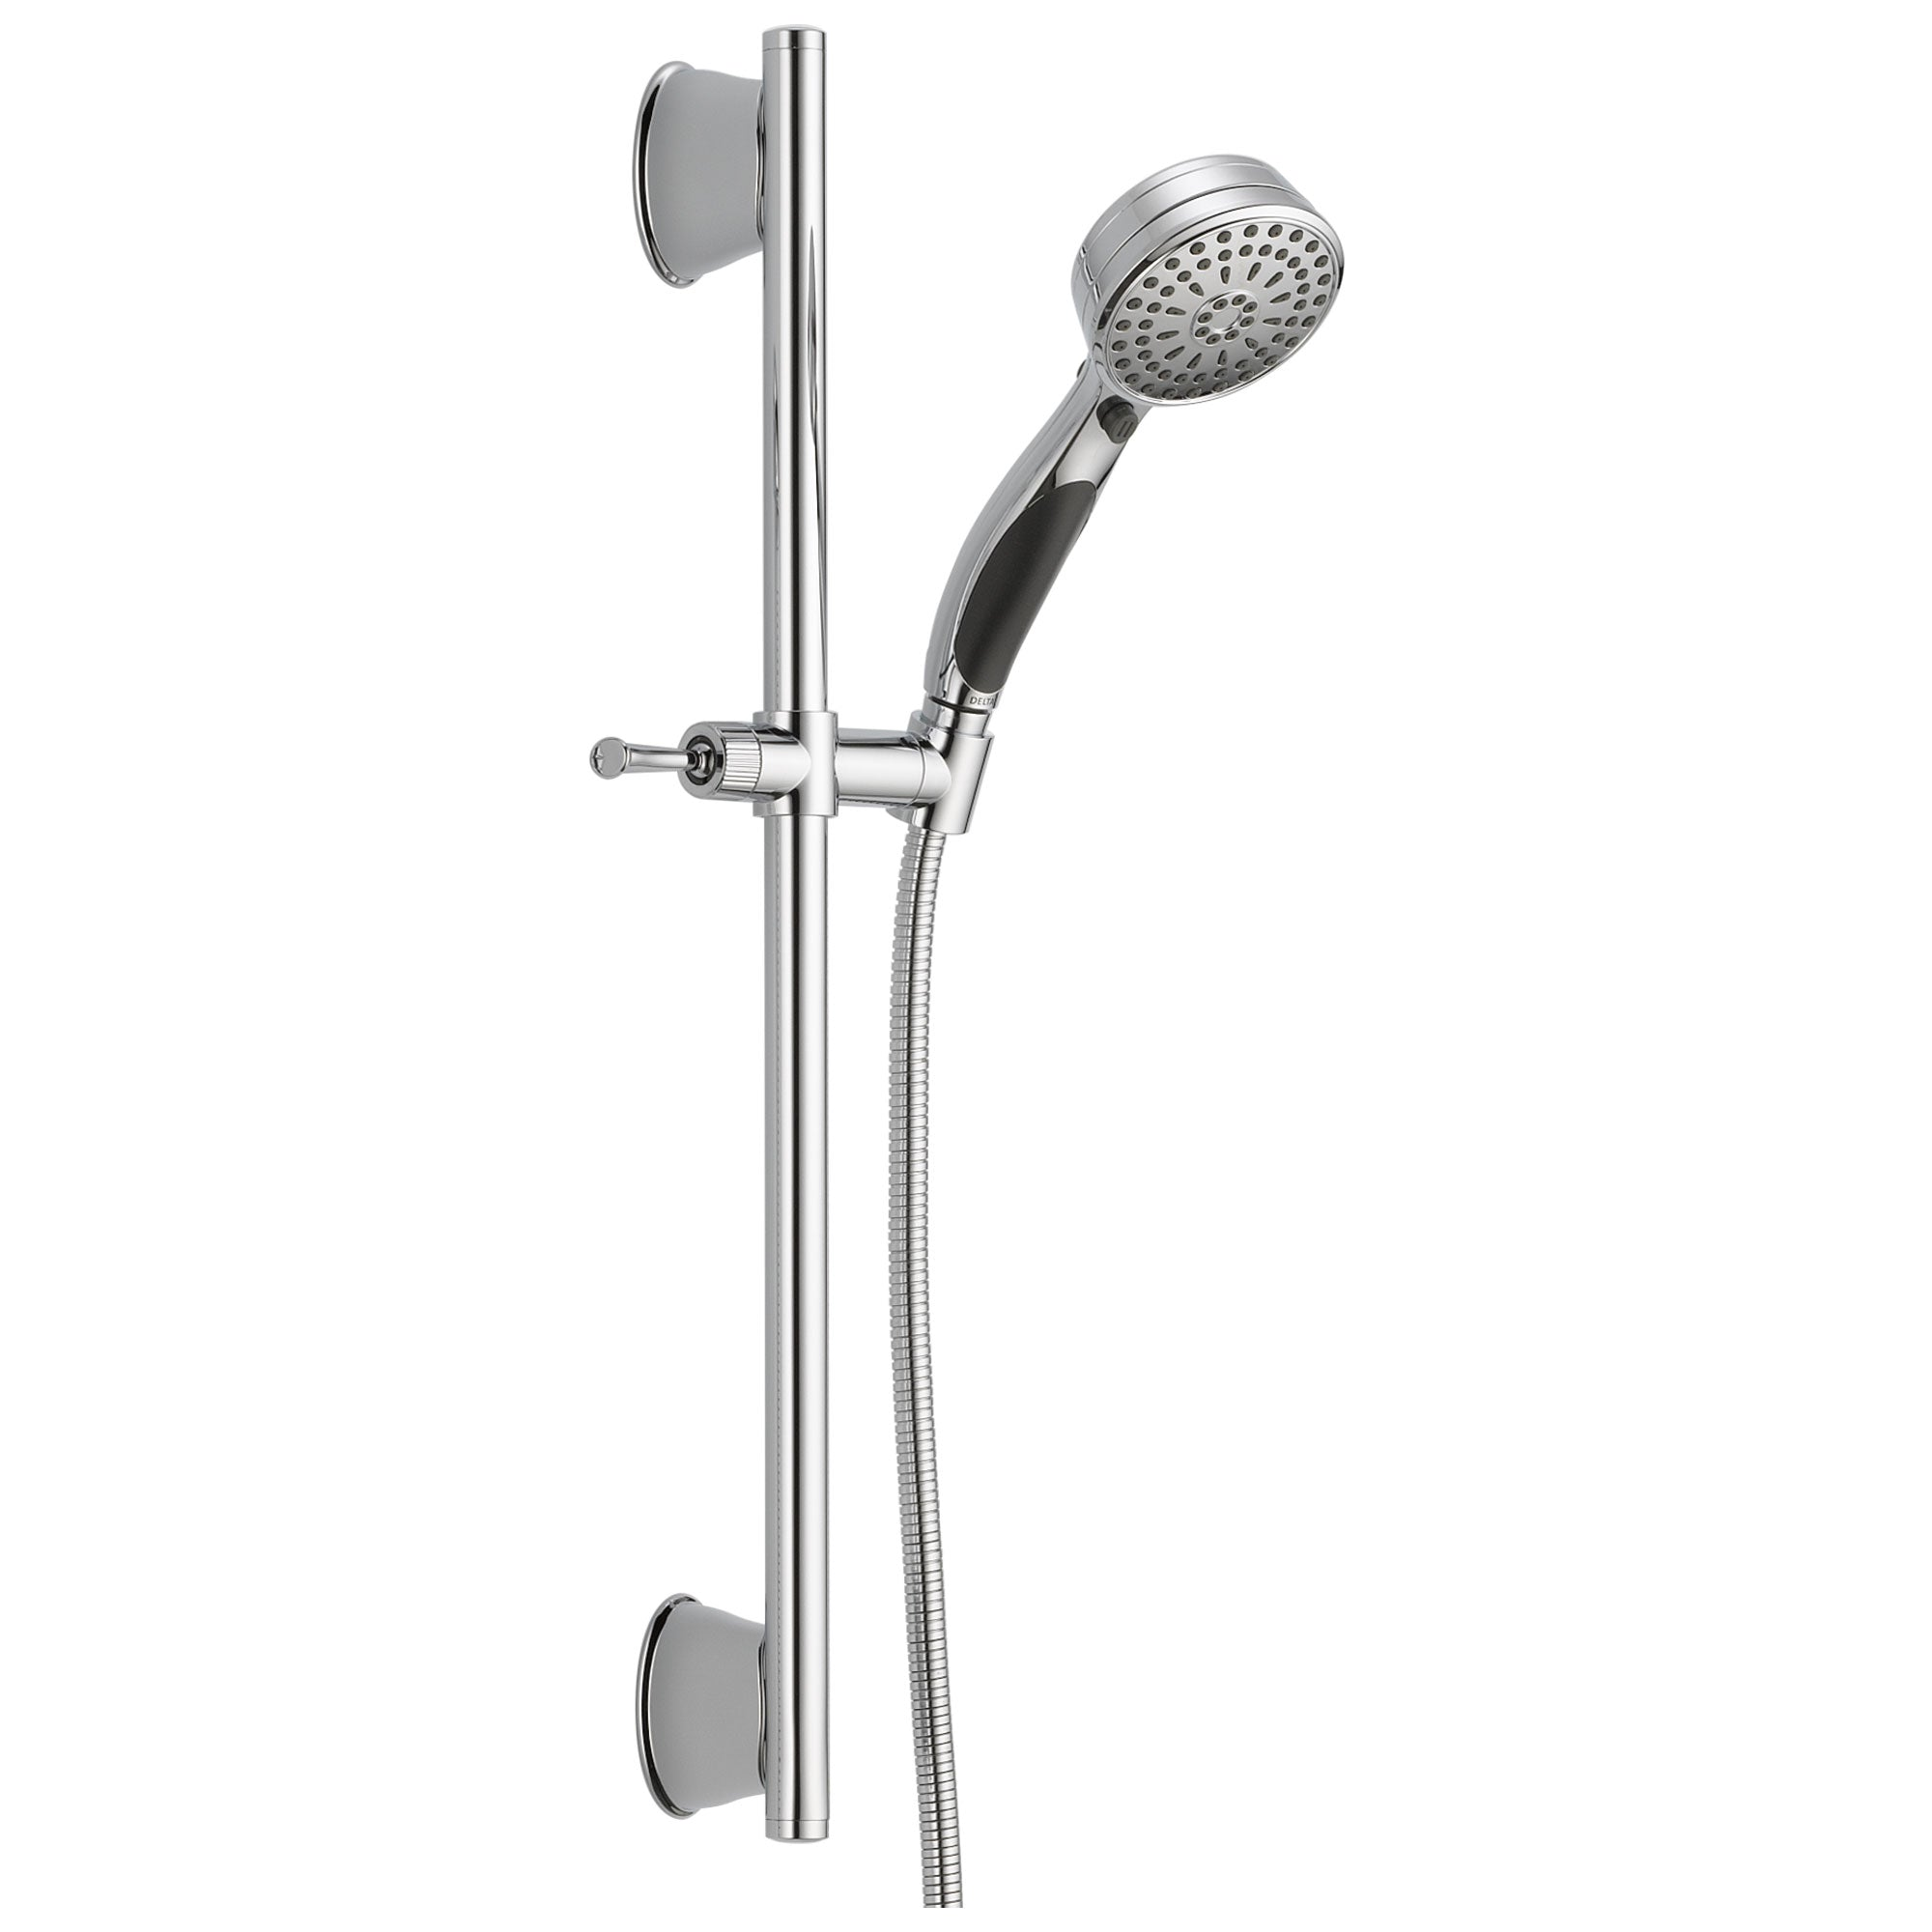 Delta Universal Showering Components Collection Chrome Finish ActivTouch Multi-setting Hand Shower with Slide Bar and Hose D51549